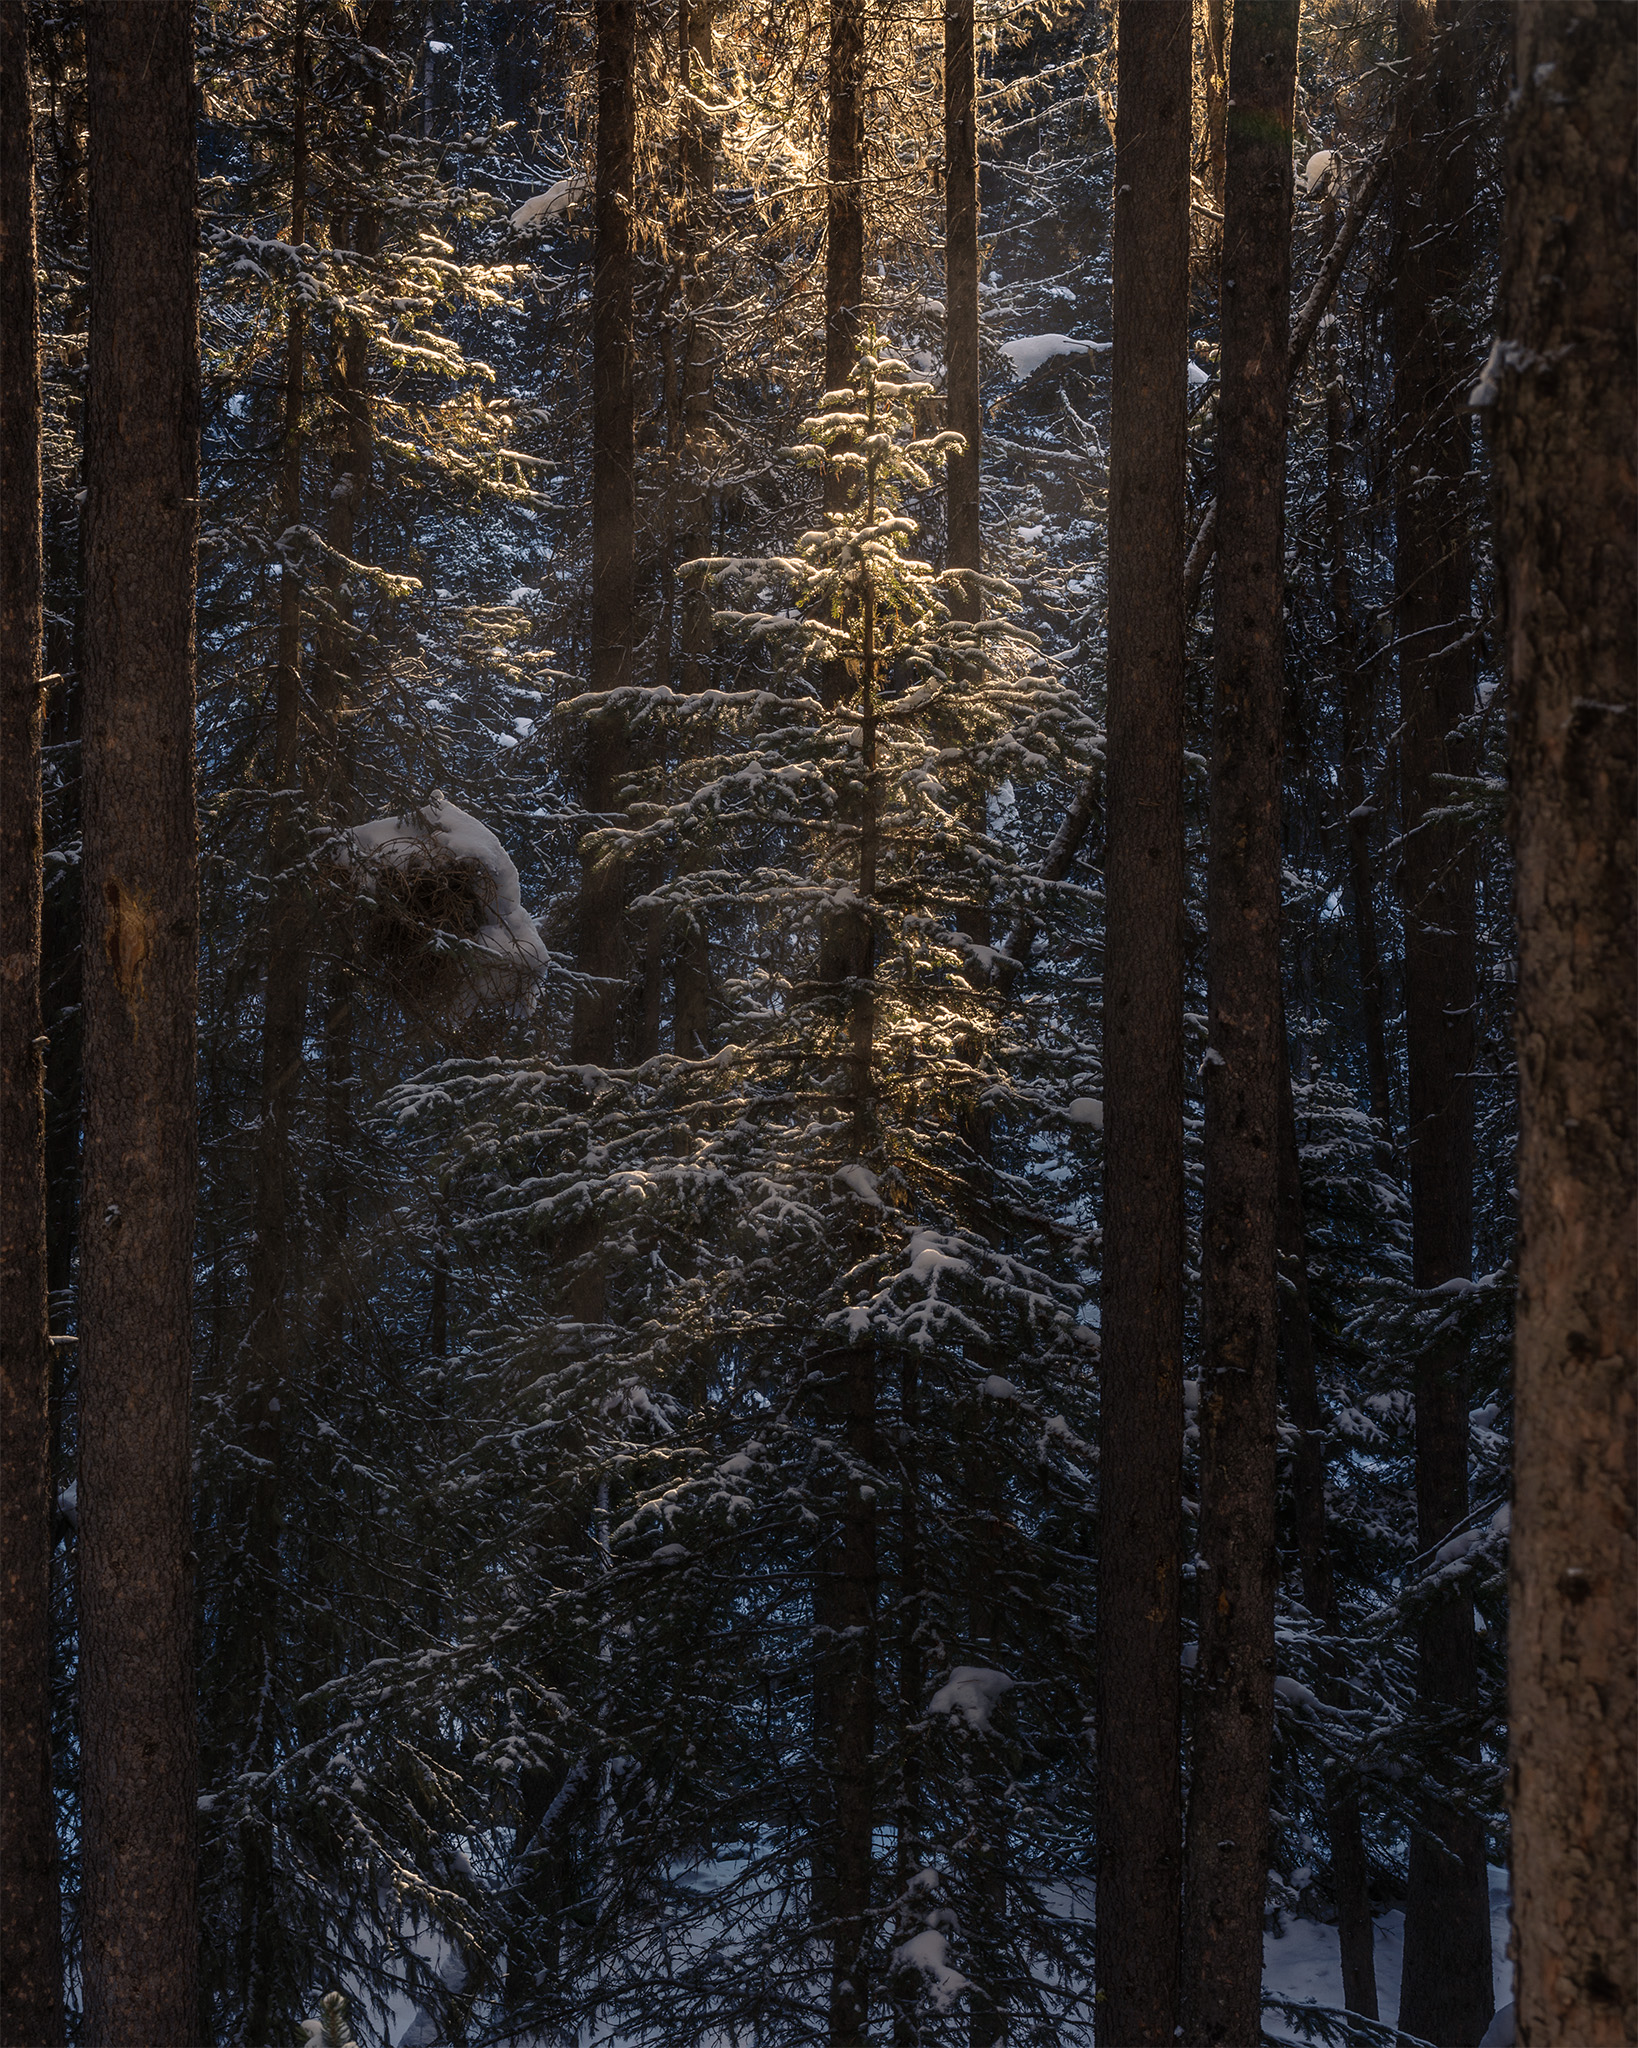 Landscape Photograph of a beam of light invading the forest at Johnston Canyon